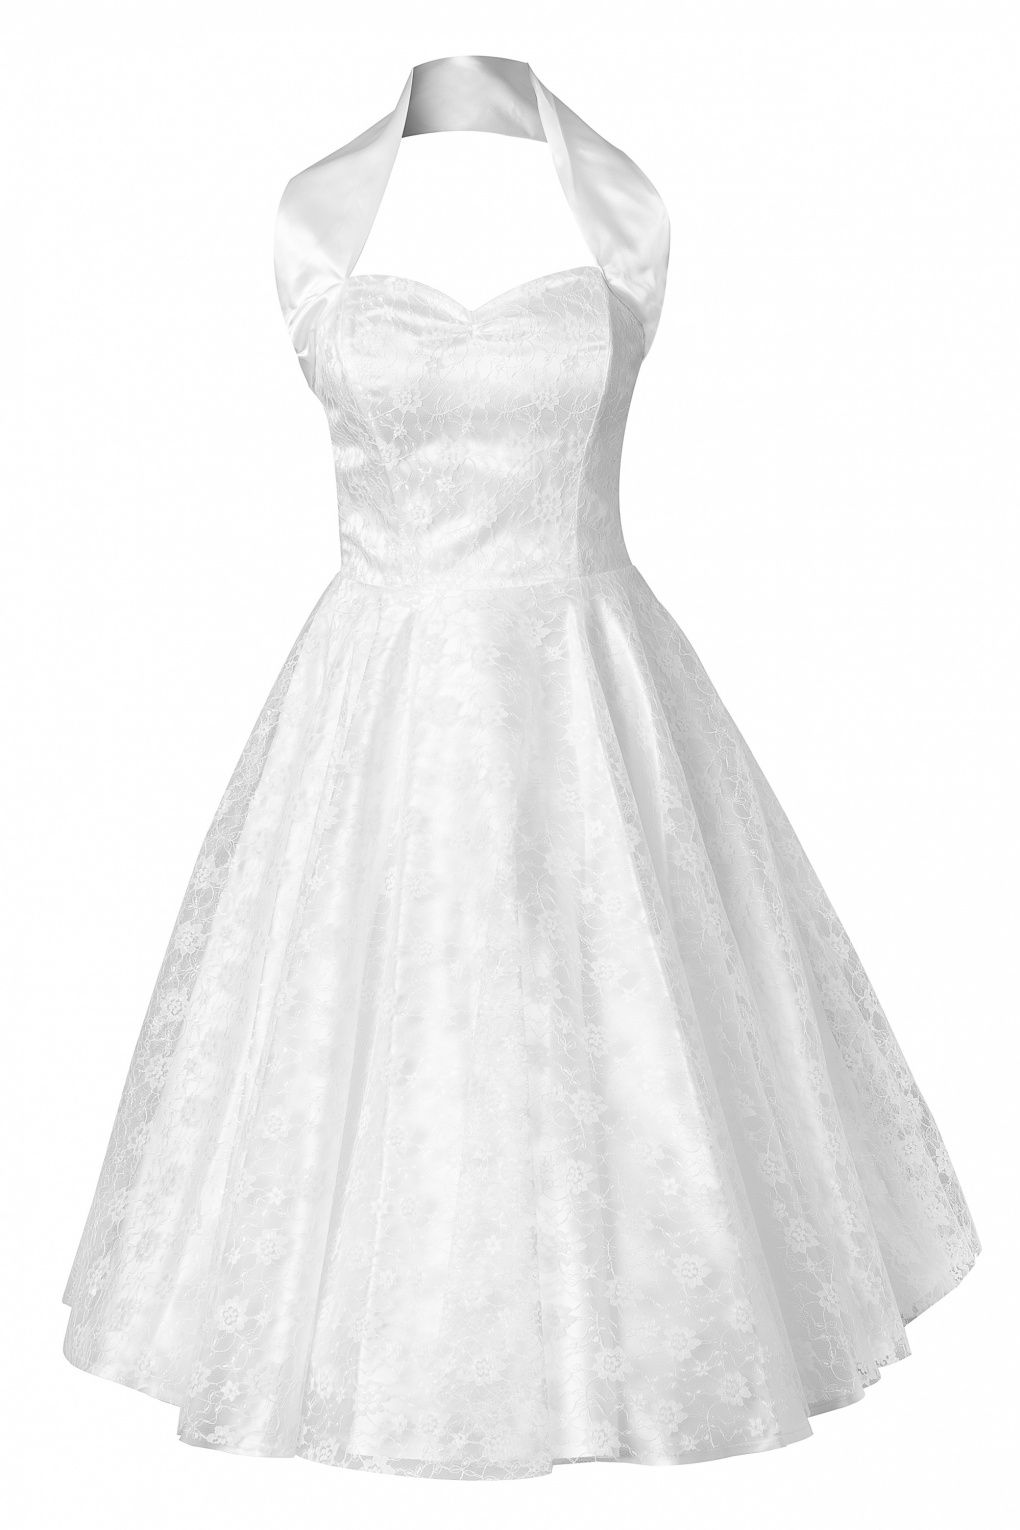 Vivien Of Holloway 50s Retro Halter Luxury White Satin Lace Swing Dress Wedding Dres